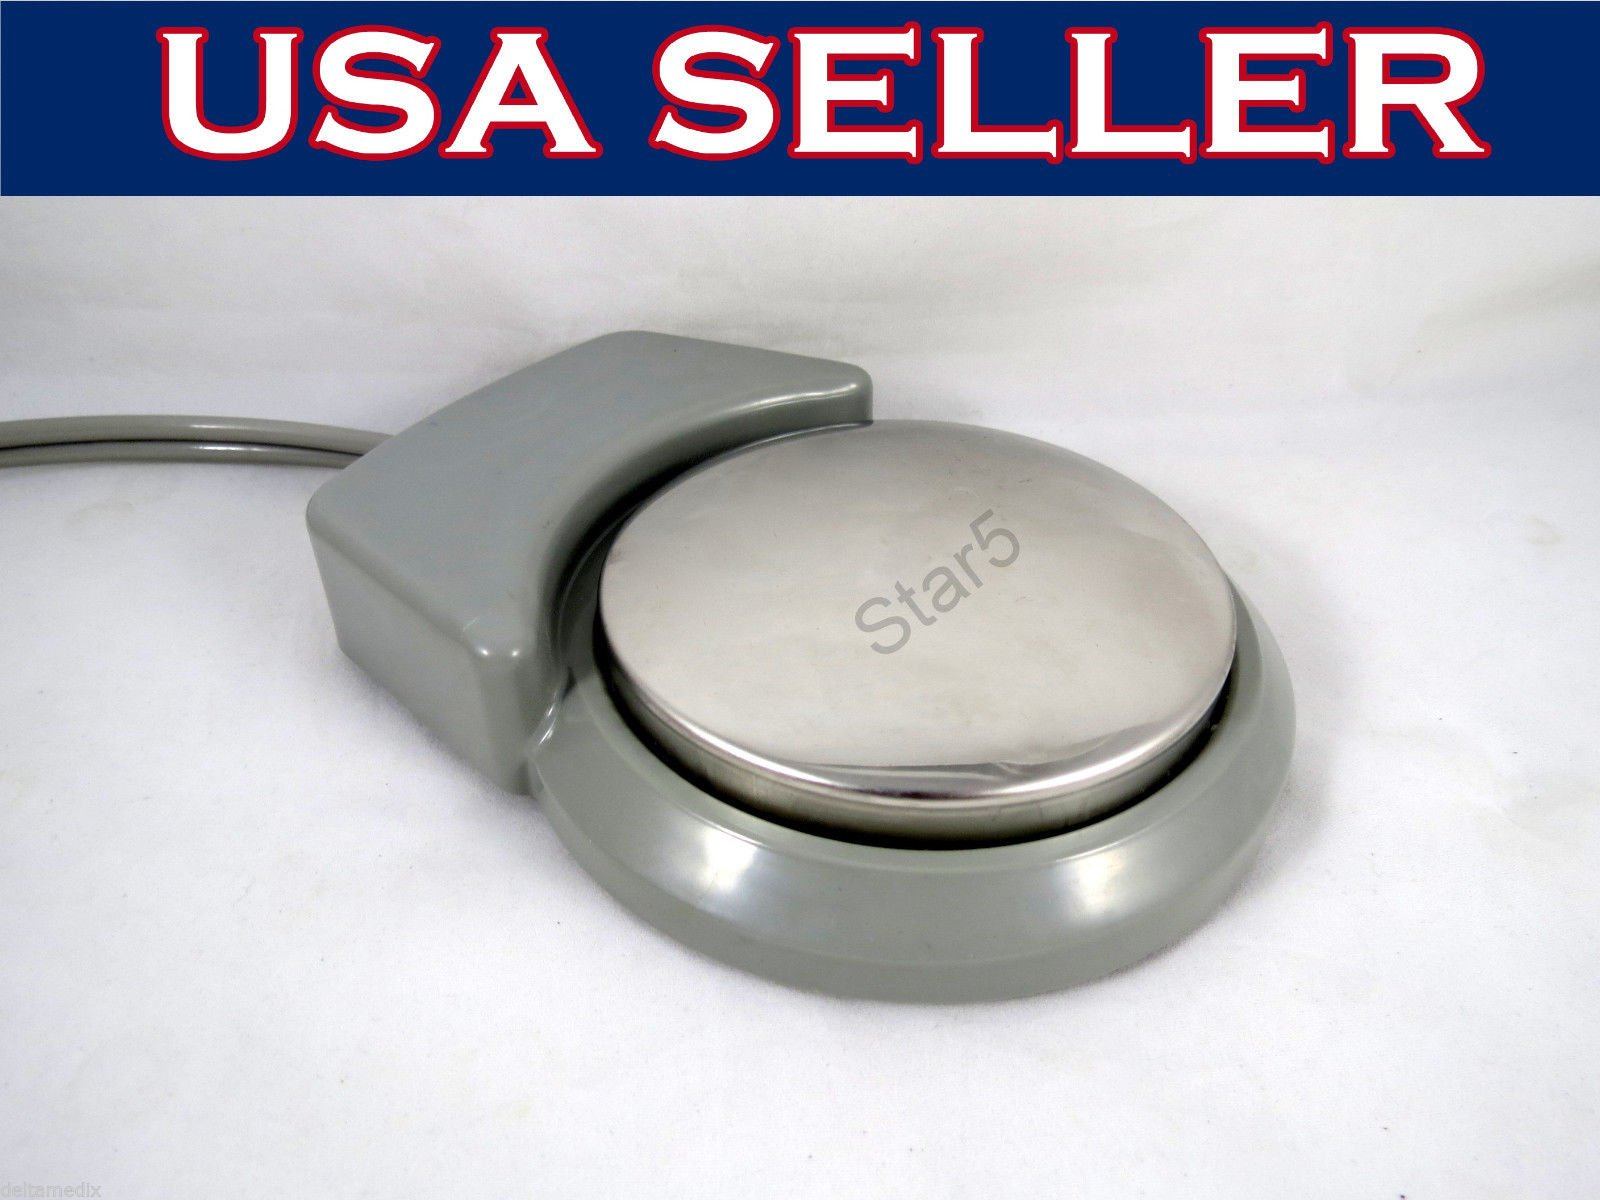 Dental 2 Hole Foot Control Pneumatic Round Pedal And Tubing B2 Standard Unit STAR5